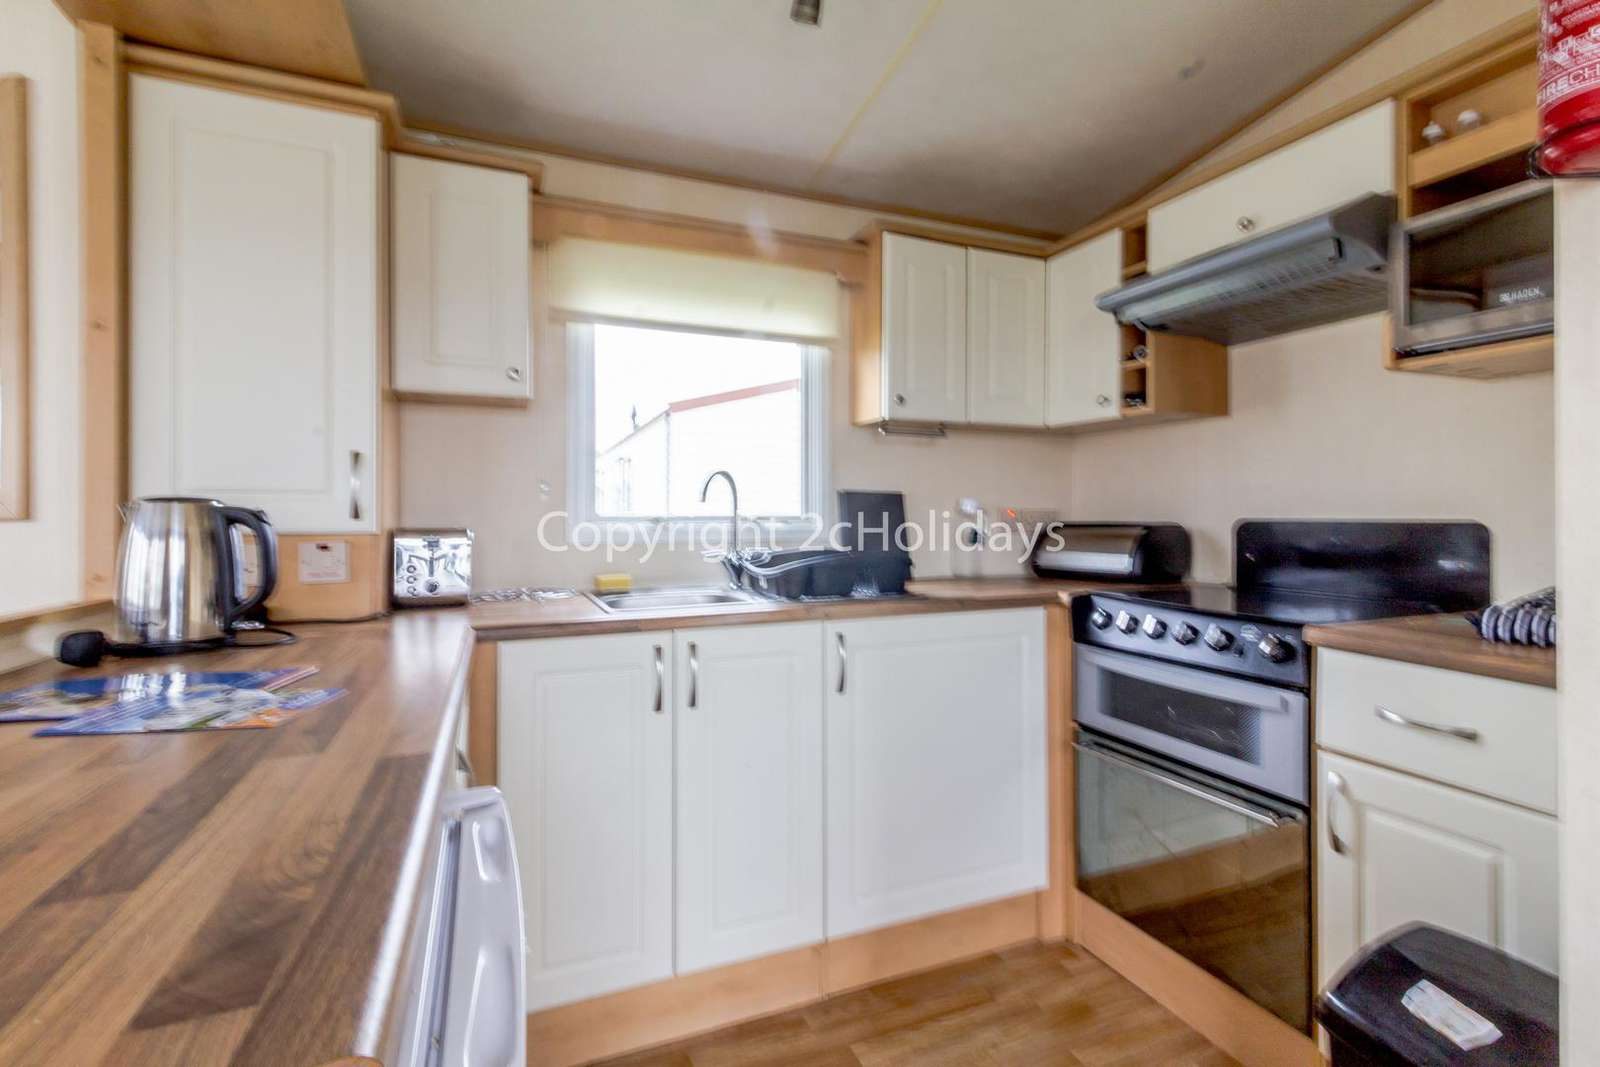 Fully equipped kitchen, perfect for self-catering holiday!